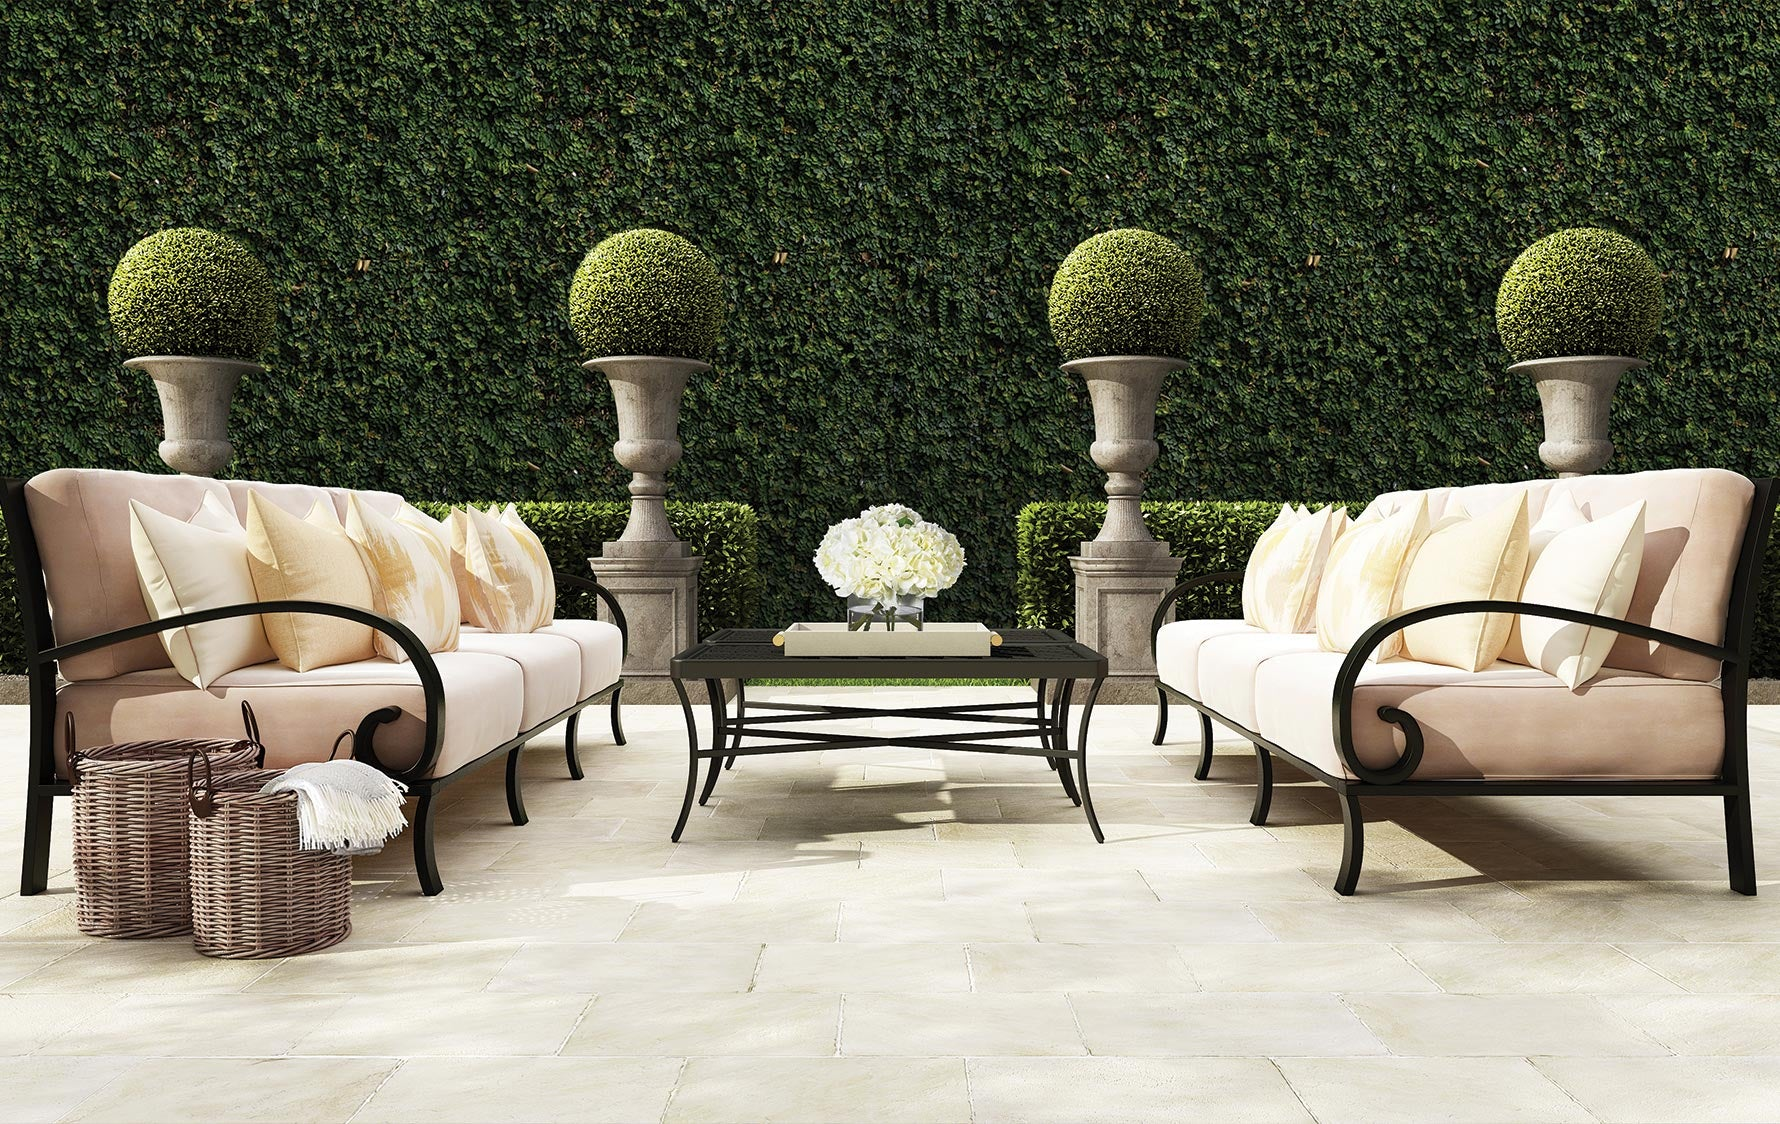 Transform Your Outdoor Space Into A Staycation Resort | Get the English Garden look at LuxDeco.com